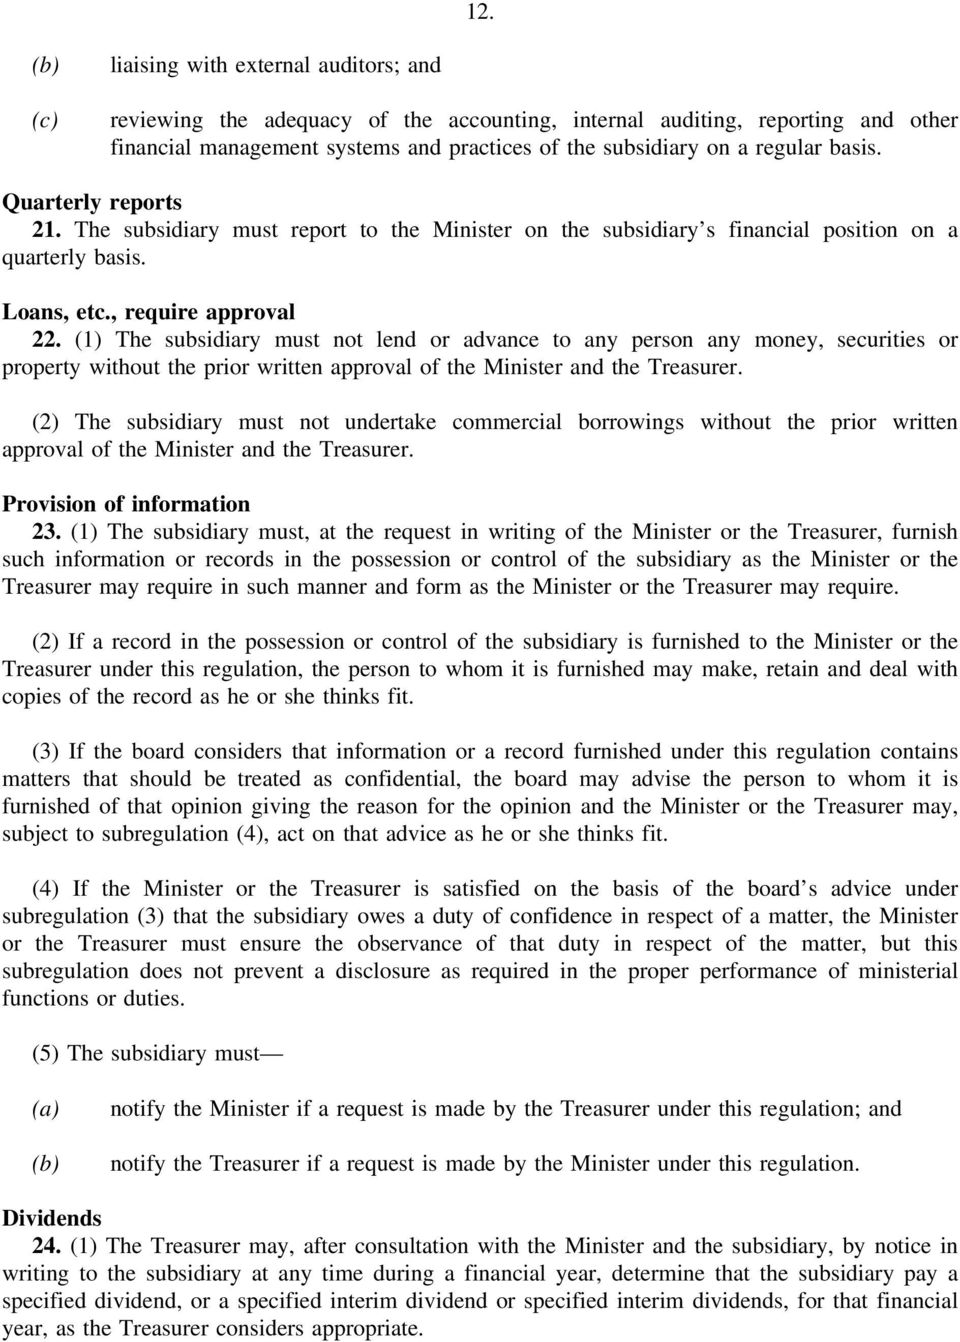 (1) The subsidiary must not lend or advance to any person any money, securities or property without the prior written approval of the Minister and the Treasurer.